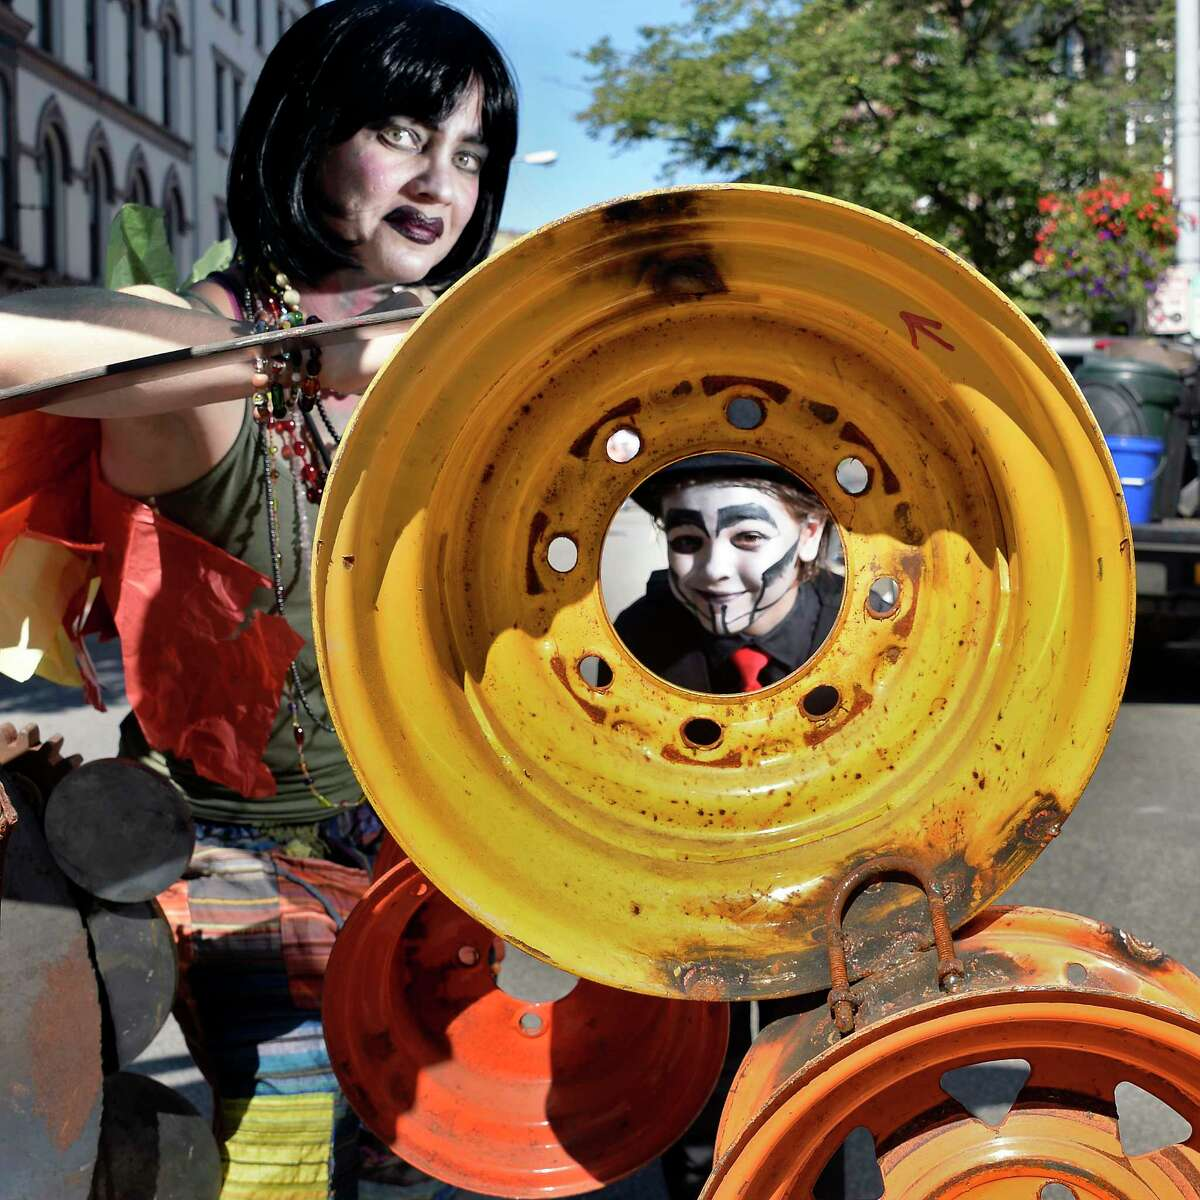 Heather Dalton and her daughter Allison, 7, pose in costume at a steampunk sculpture during The Enchanted City, an urban street fair and spectacle of steampunk fashion Saturday Sept. 15, 2018 in Troy, NY. (John Carl D'Annibale/Times Union)